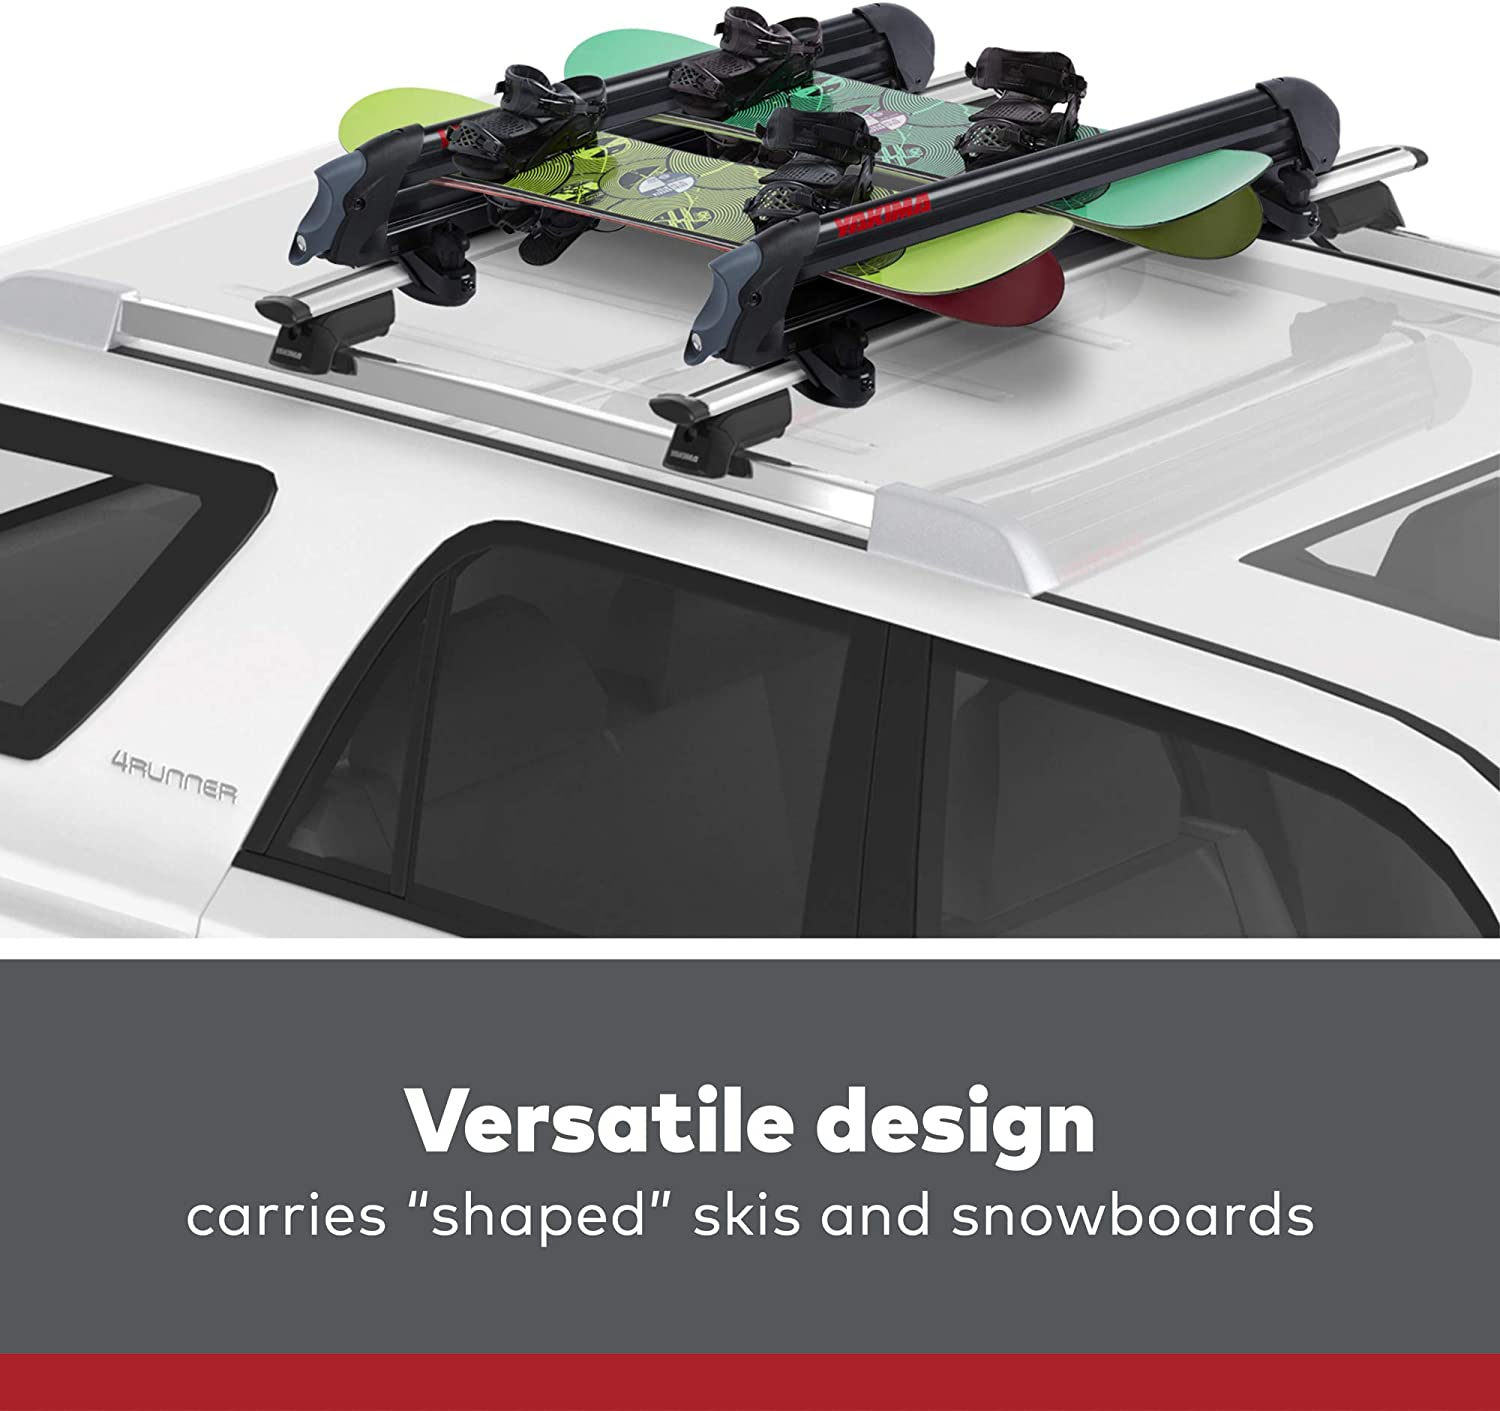 YAKIMA - PowderHound 6 Ski & Snowboard Mount, Fits Up to 6 Pairs of Skis or 4 Snowboards, Rides Quietly, Fits Most Roof Racks, Black